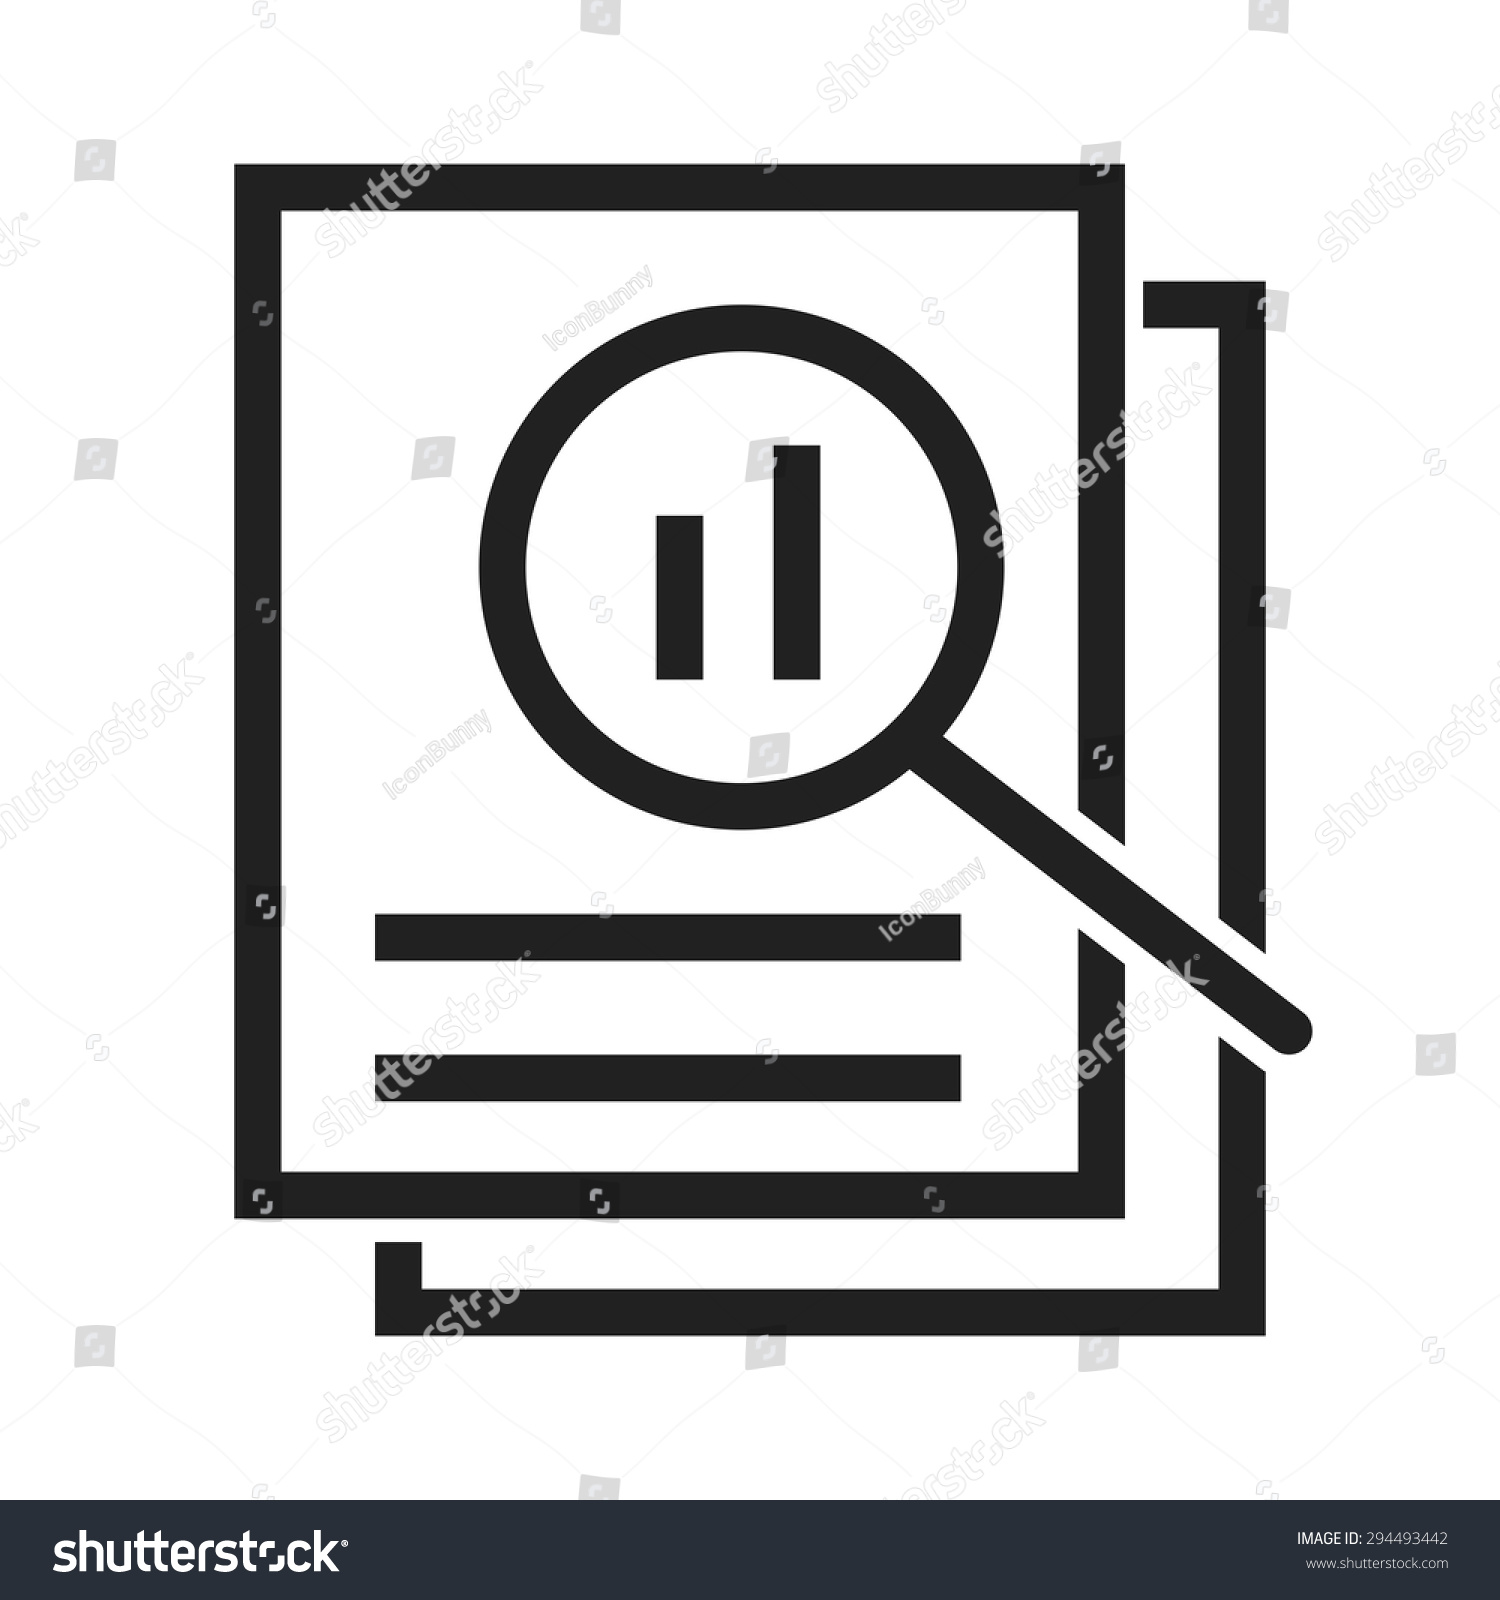 Overview Analysisreview Icon Vector Image Be Stock Vector ...